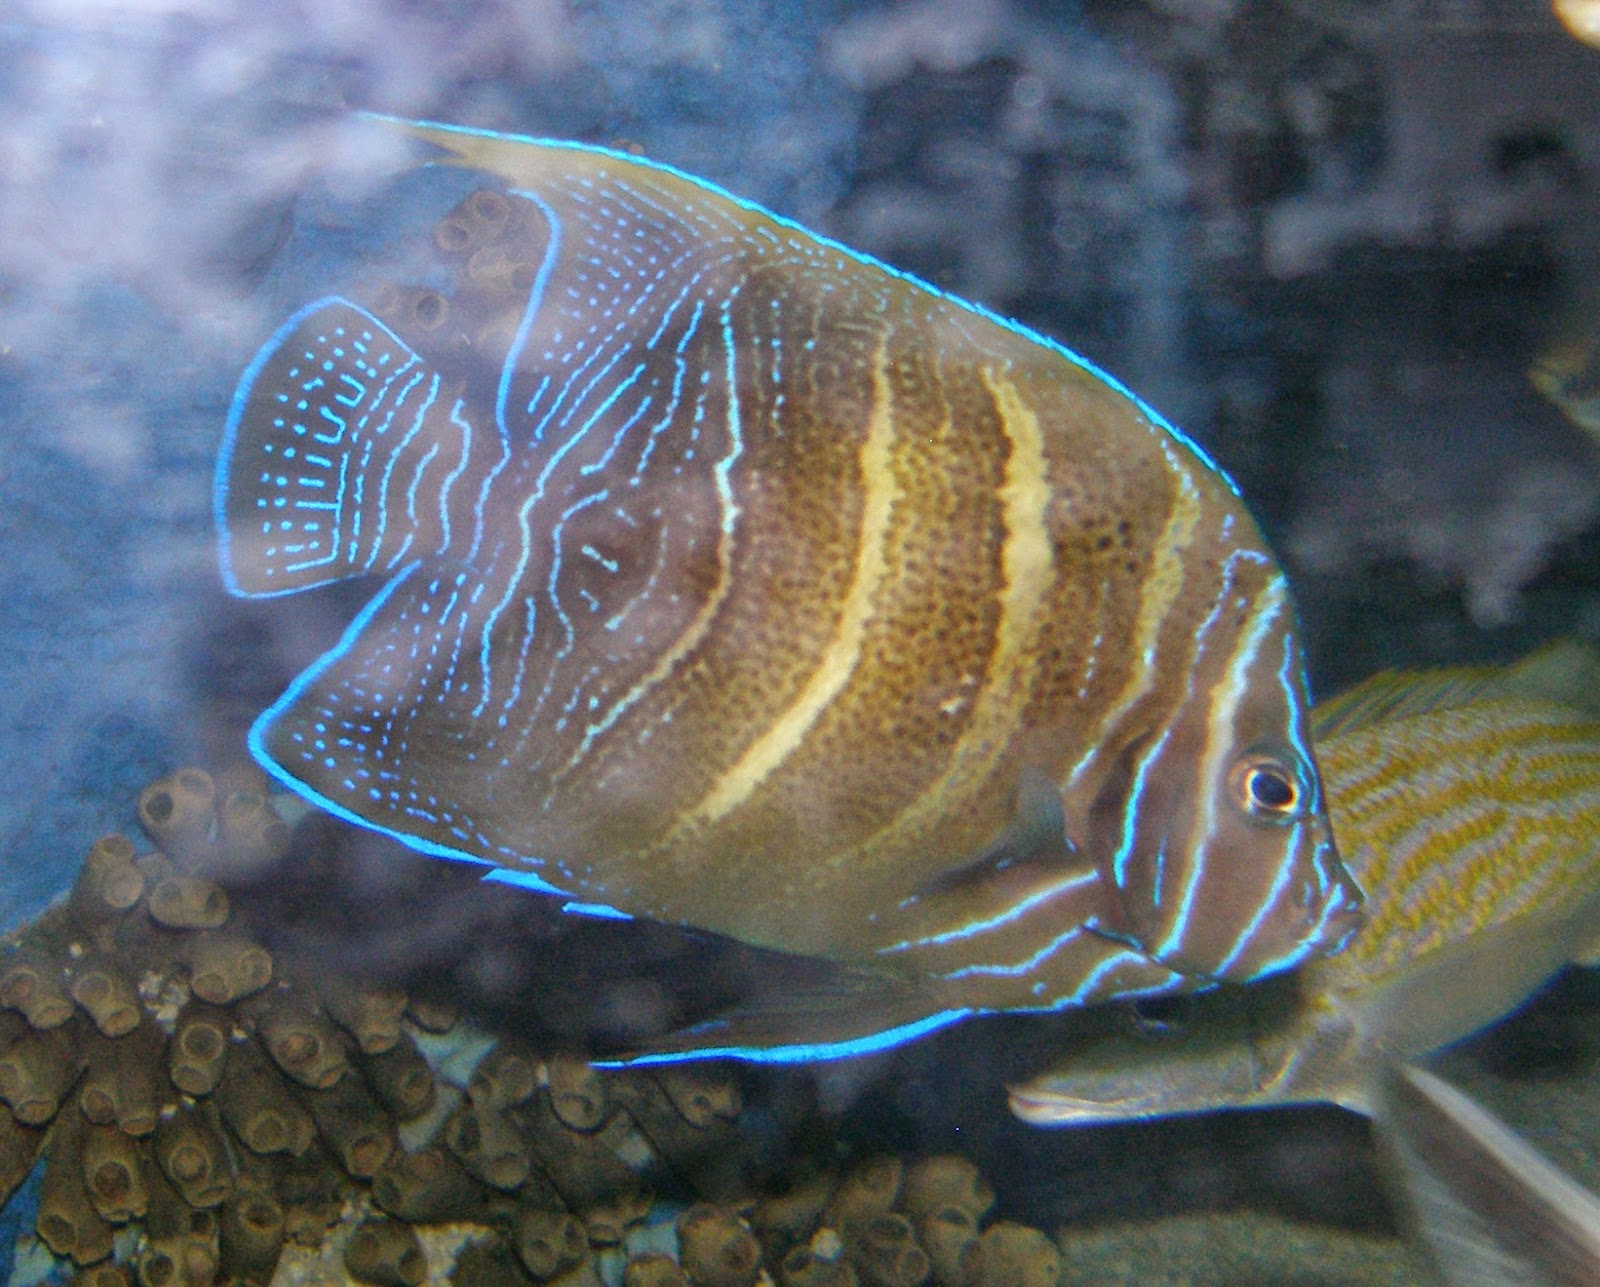 Figure 5.  Angelfish (~2 years old) on display at SeaWorld San Antonio. Figure 4 and 5 are the same fish.  Photo credit: Nick Ireland.